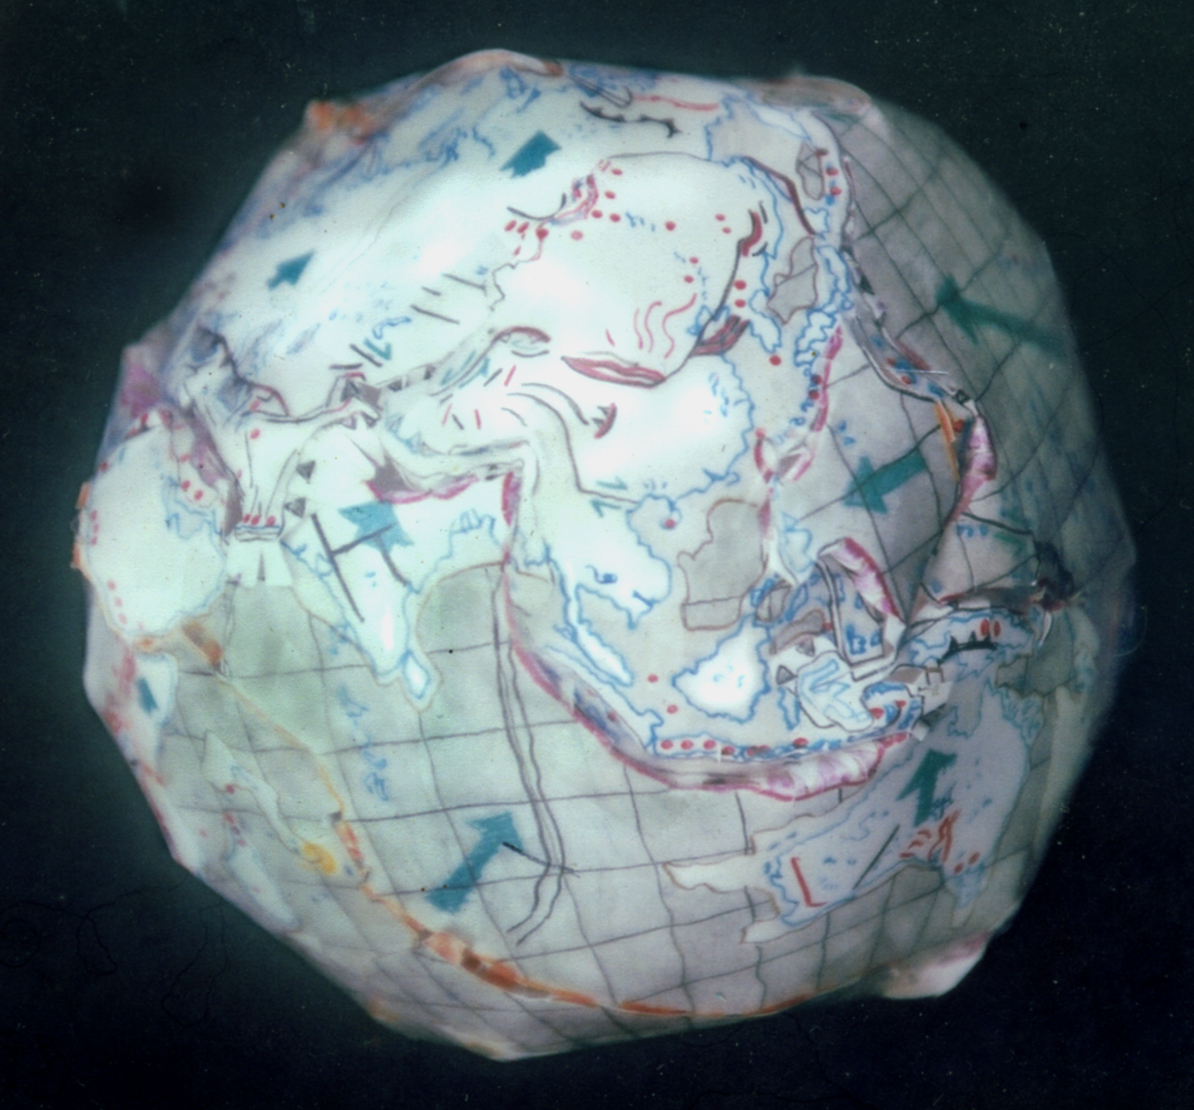 Paper Globe Tectonically Responsive to Touch